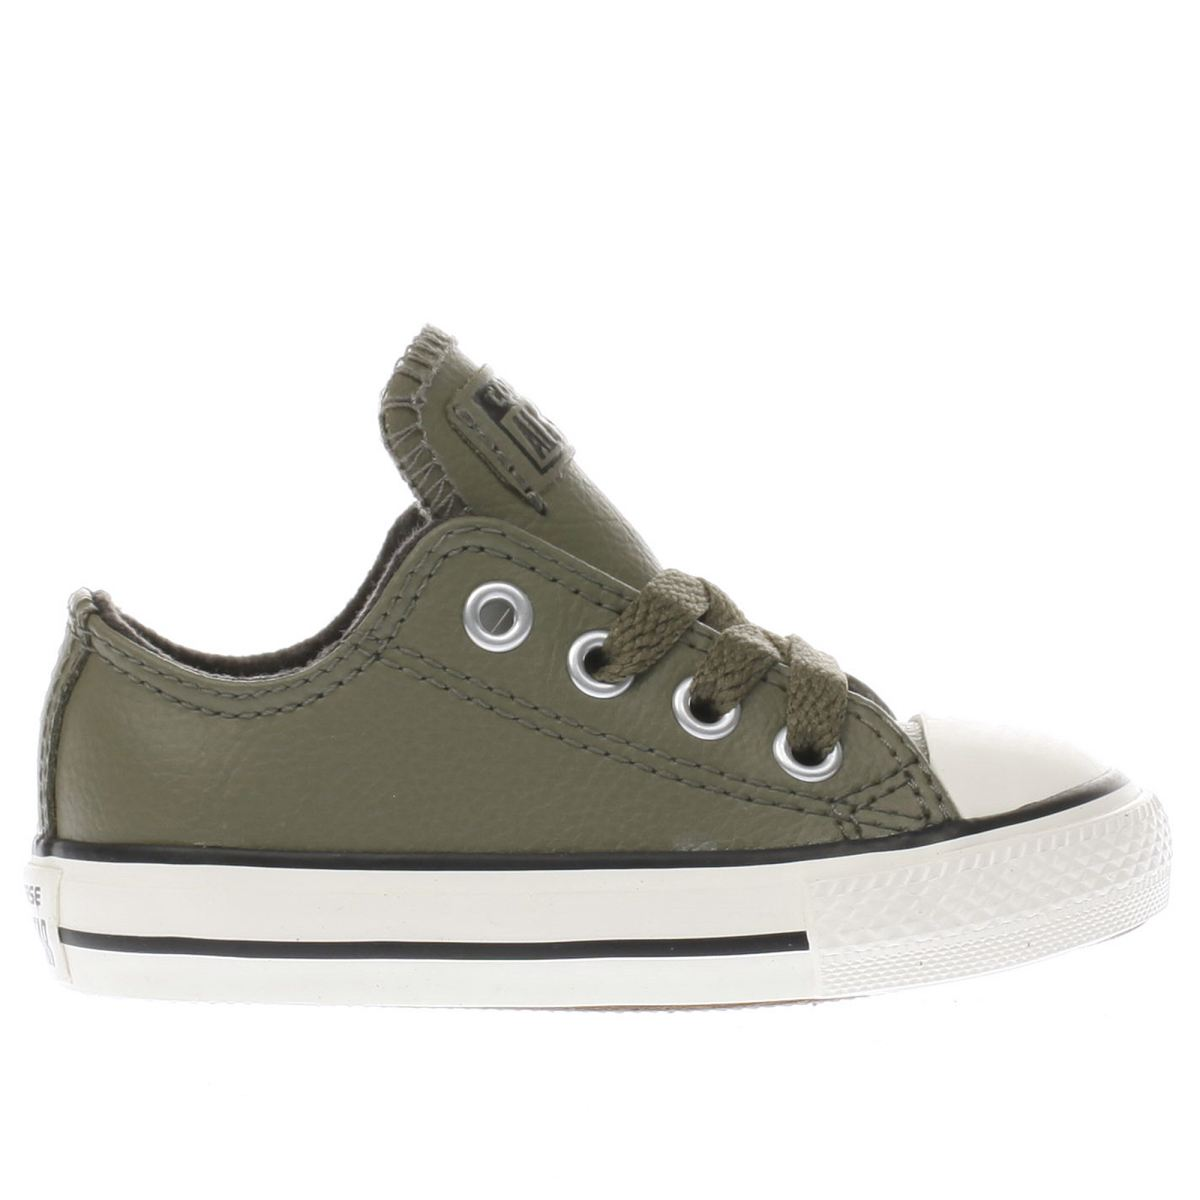 converse khaki all star lo leather Toddler Trainers